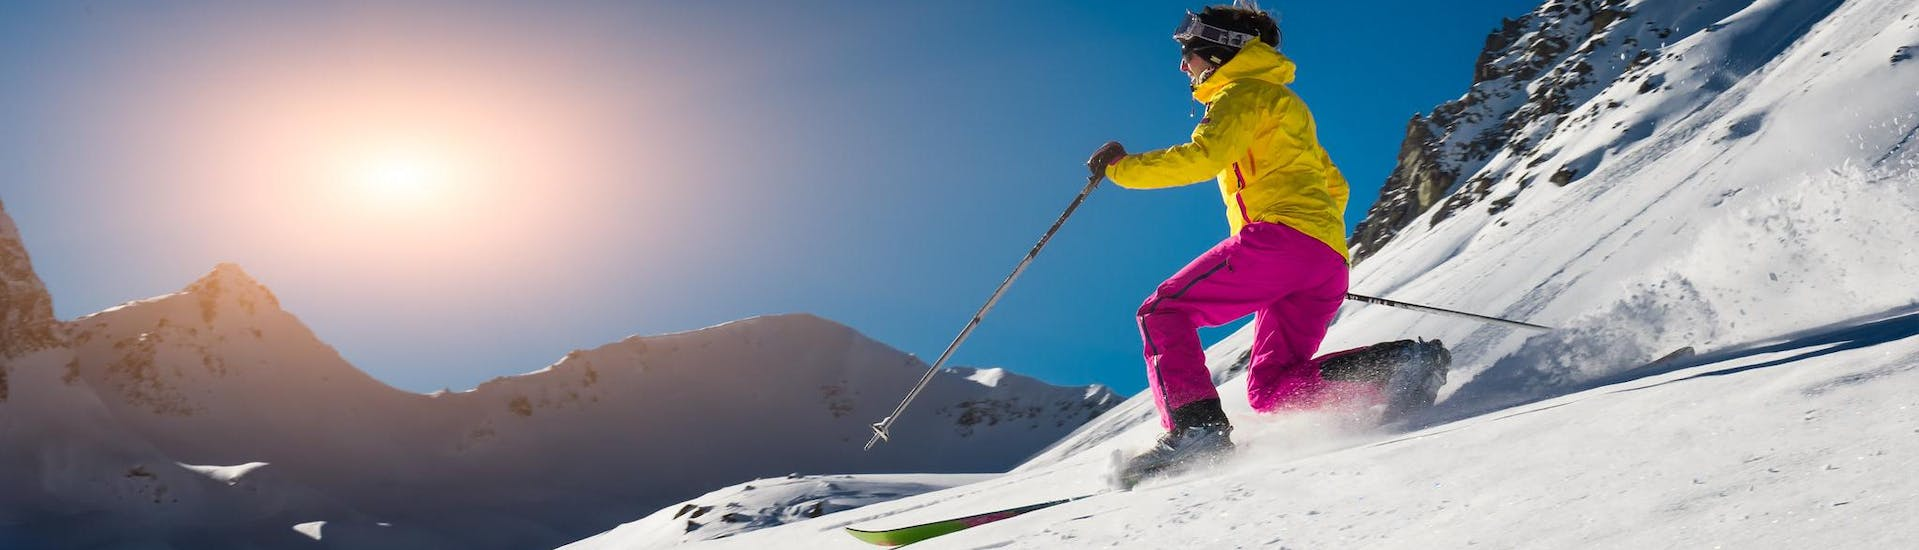 A skier is gliding down a ski slope in telemark position during one of the Telemark from beginners to pros with Konrad Herbert - Skischule Kitzbüheler Horn.